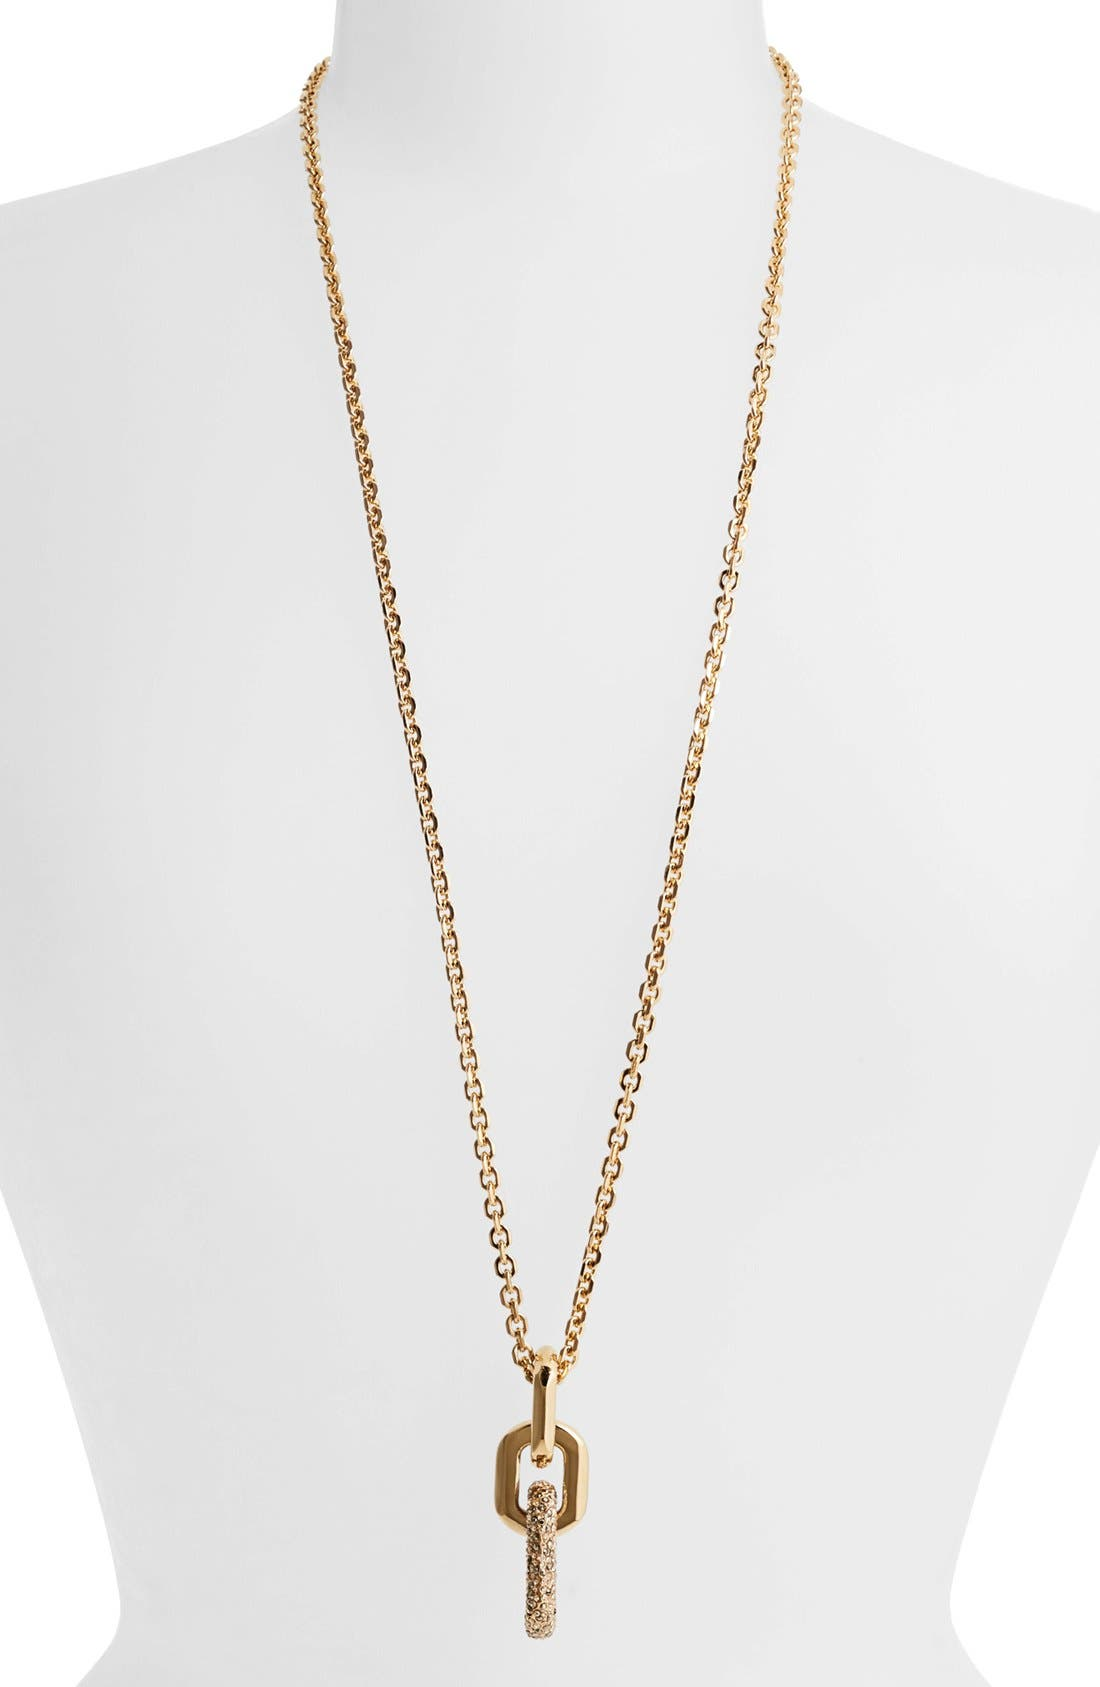 Main Image - St. John Collection Pavé Crystal Chain Link Pendant Necklace